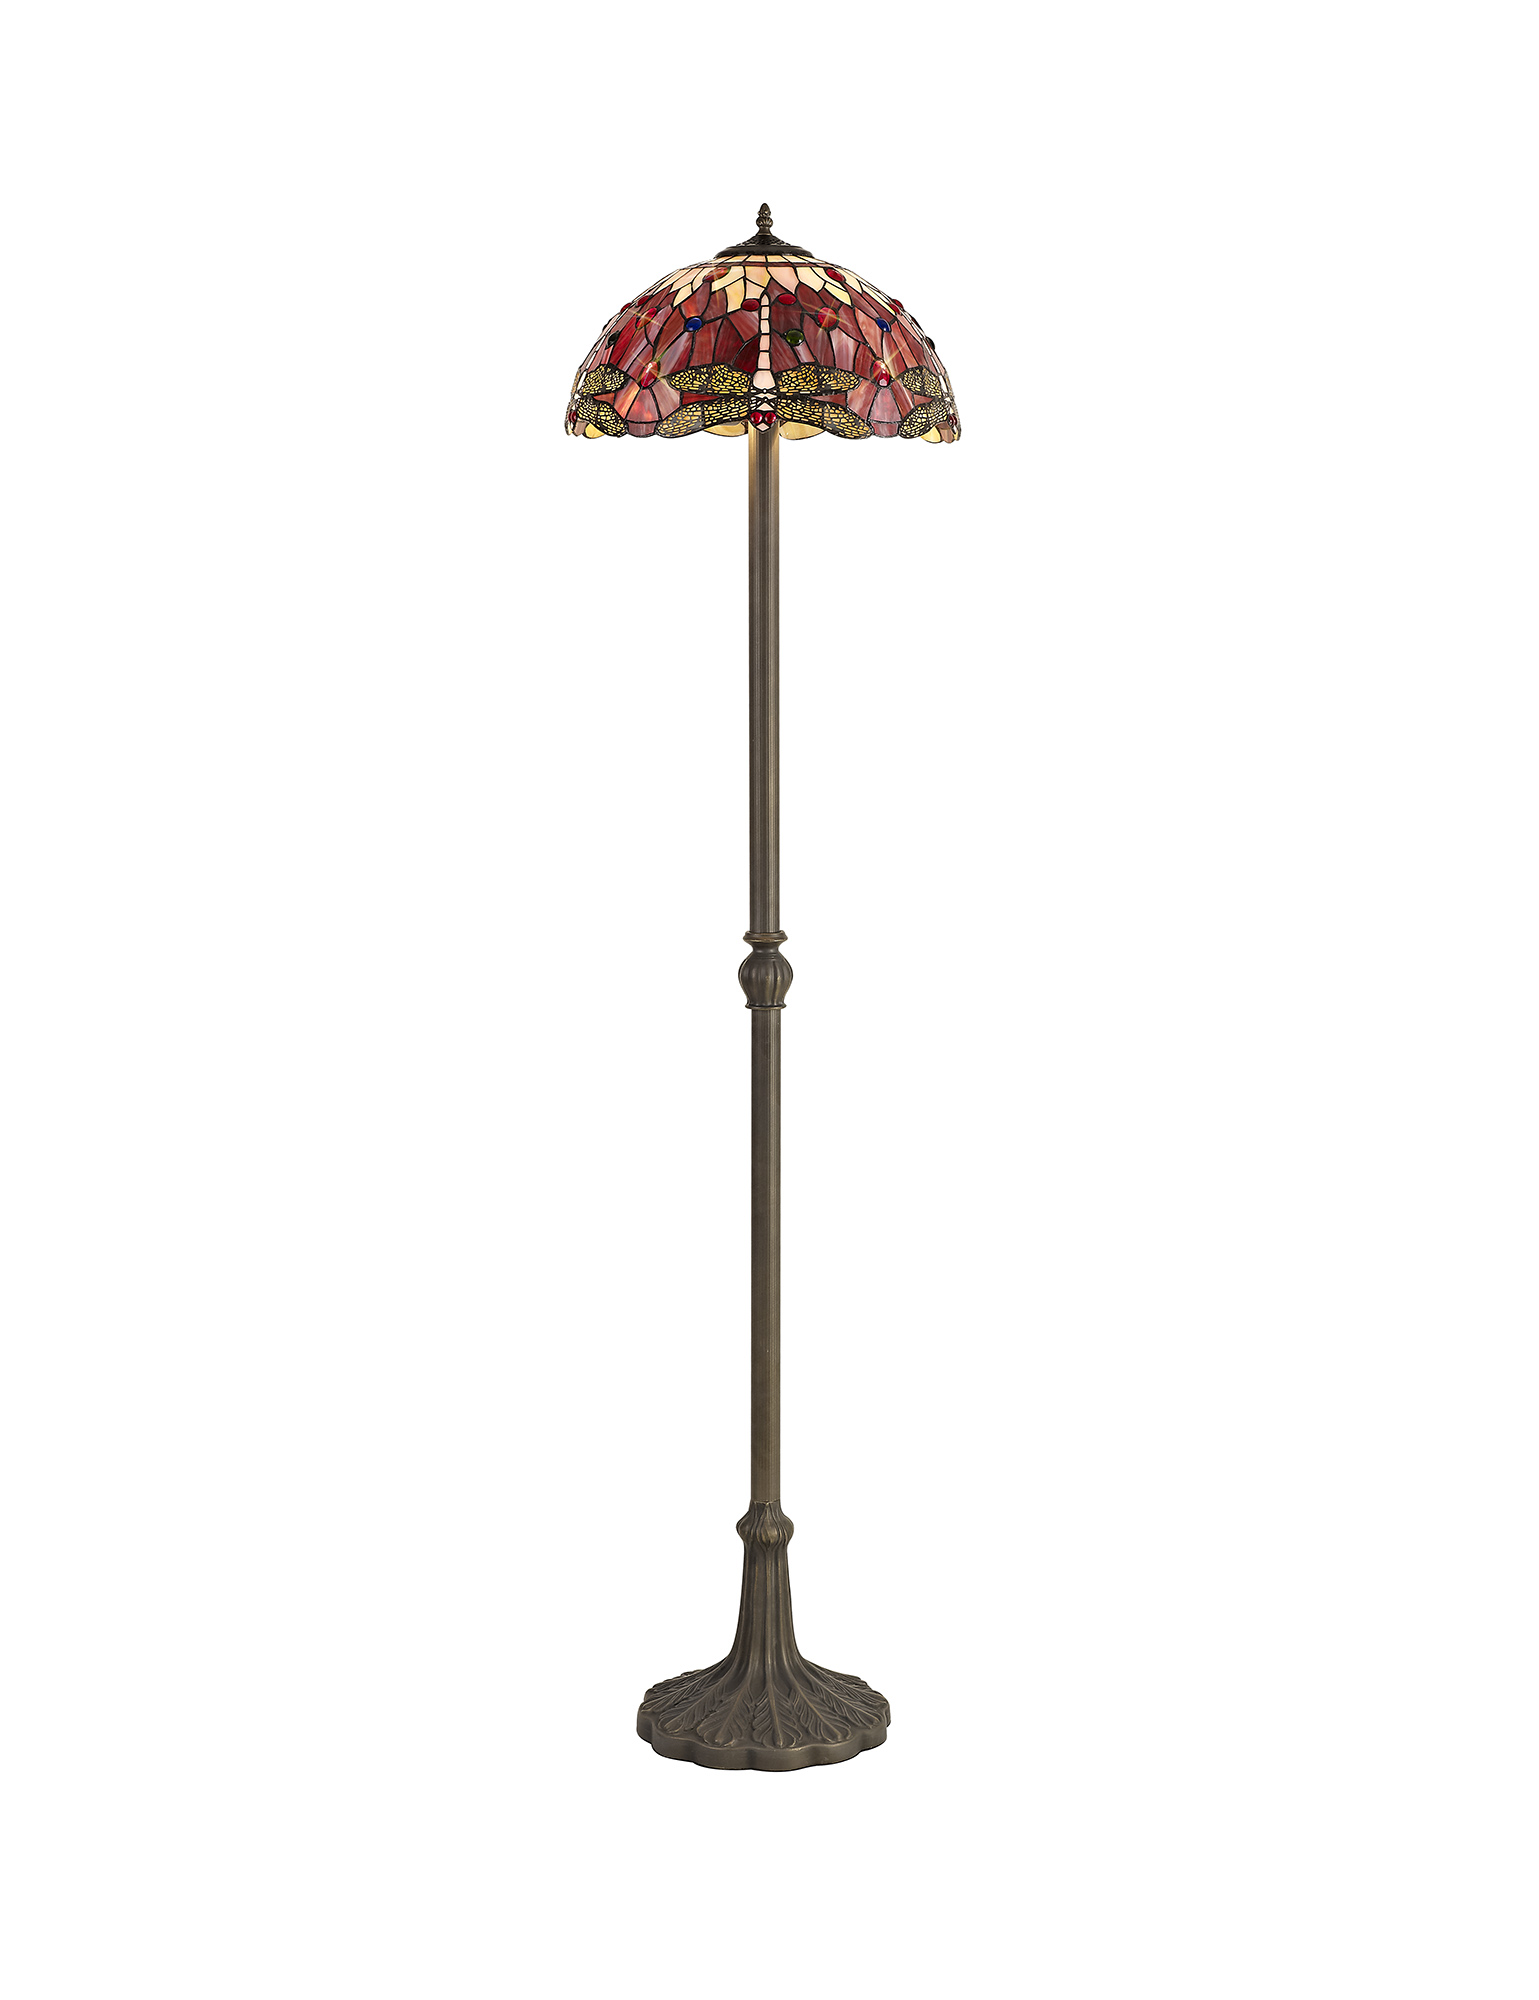 2 Light Leaf Design Floor Lamp E27 With 40cm Tiffany Shade